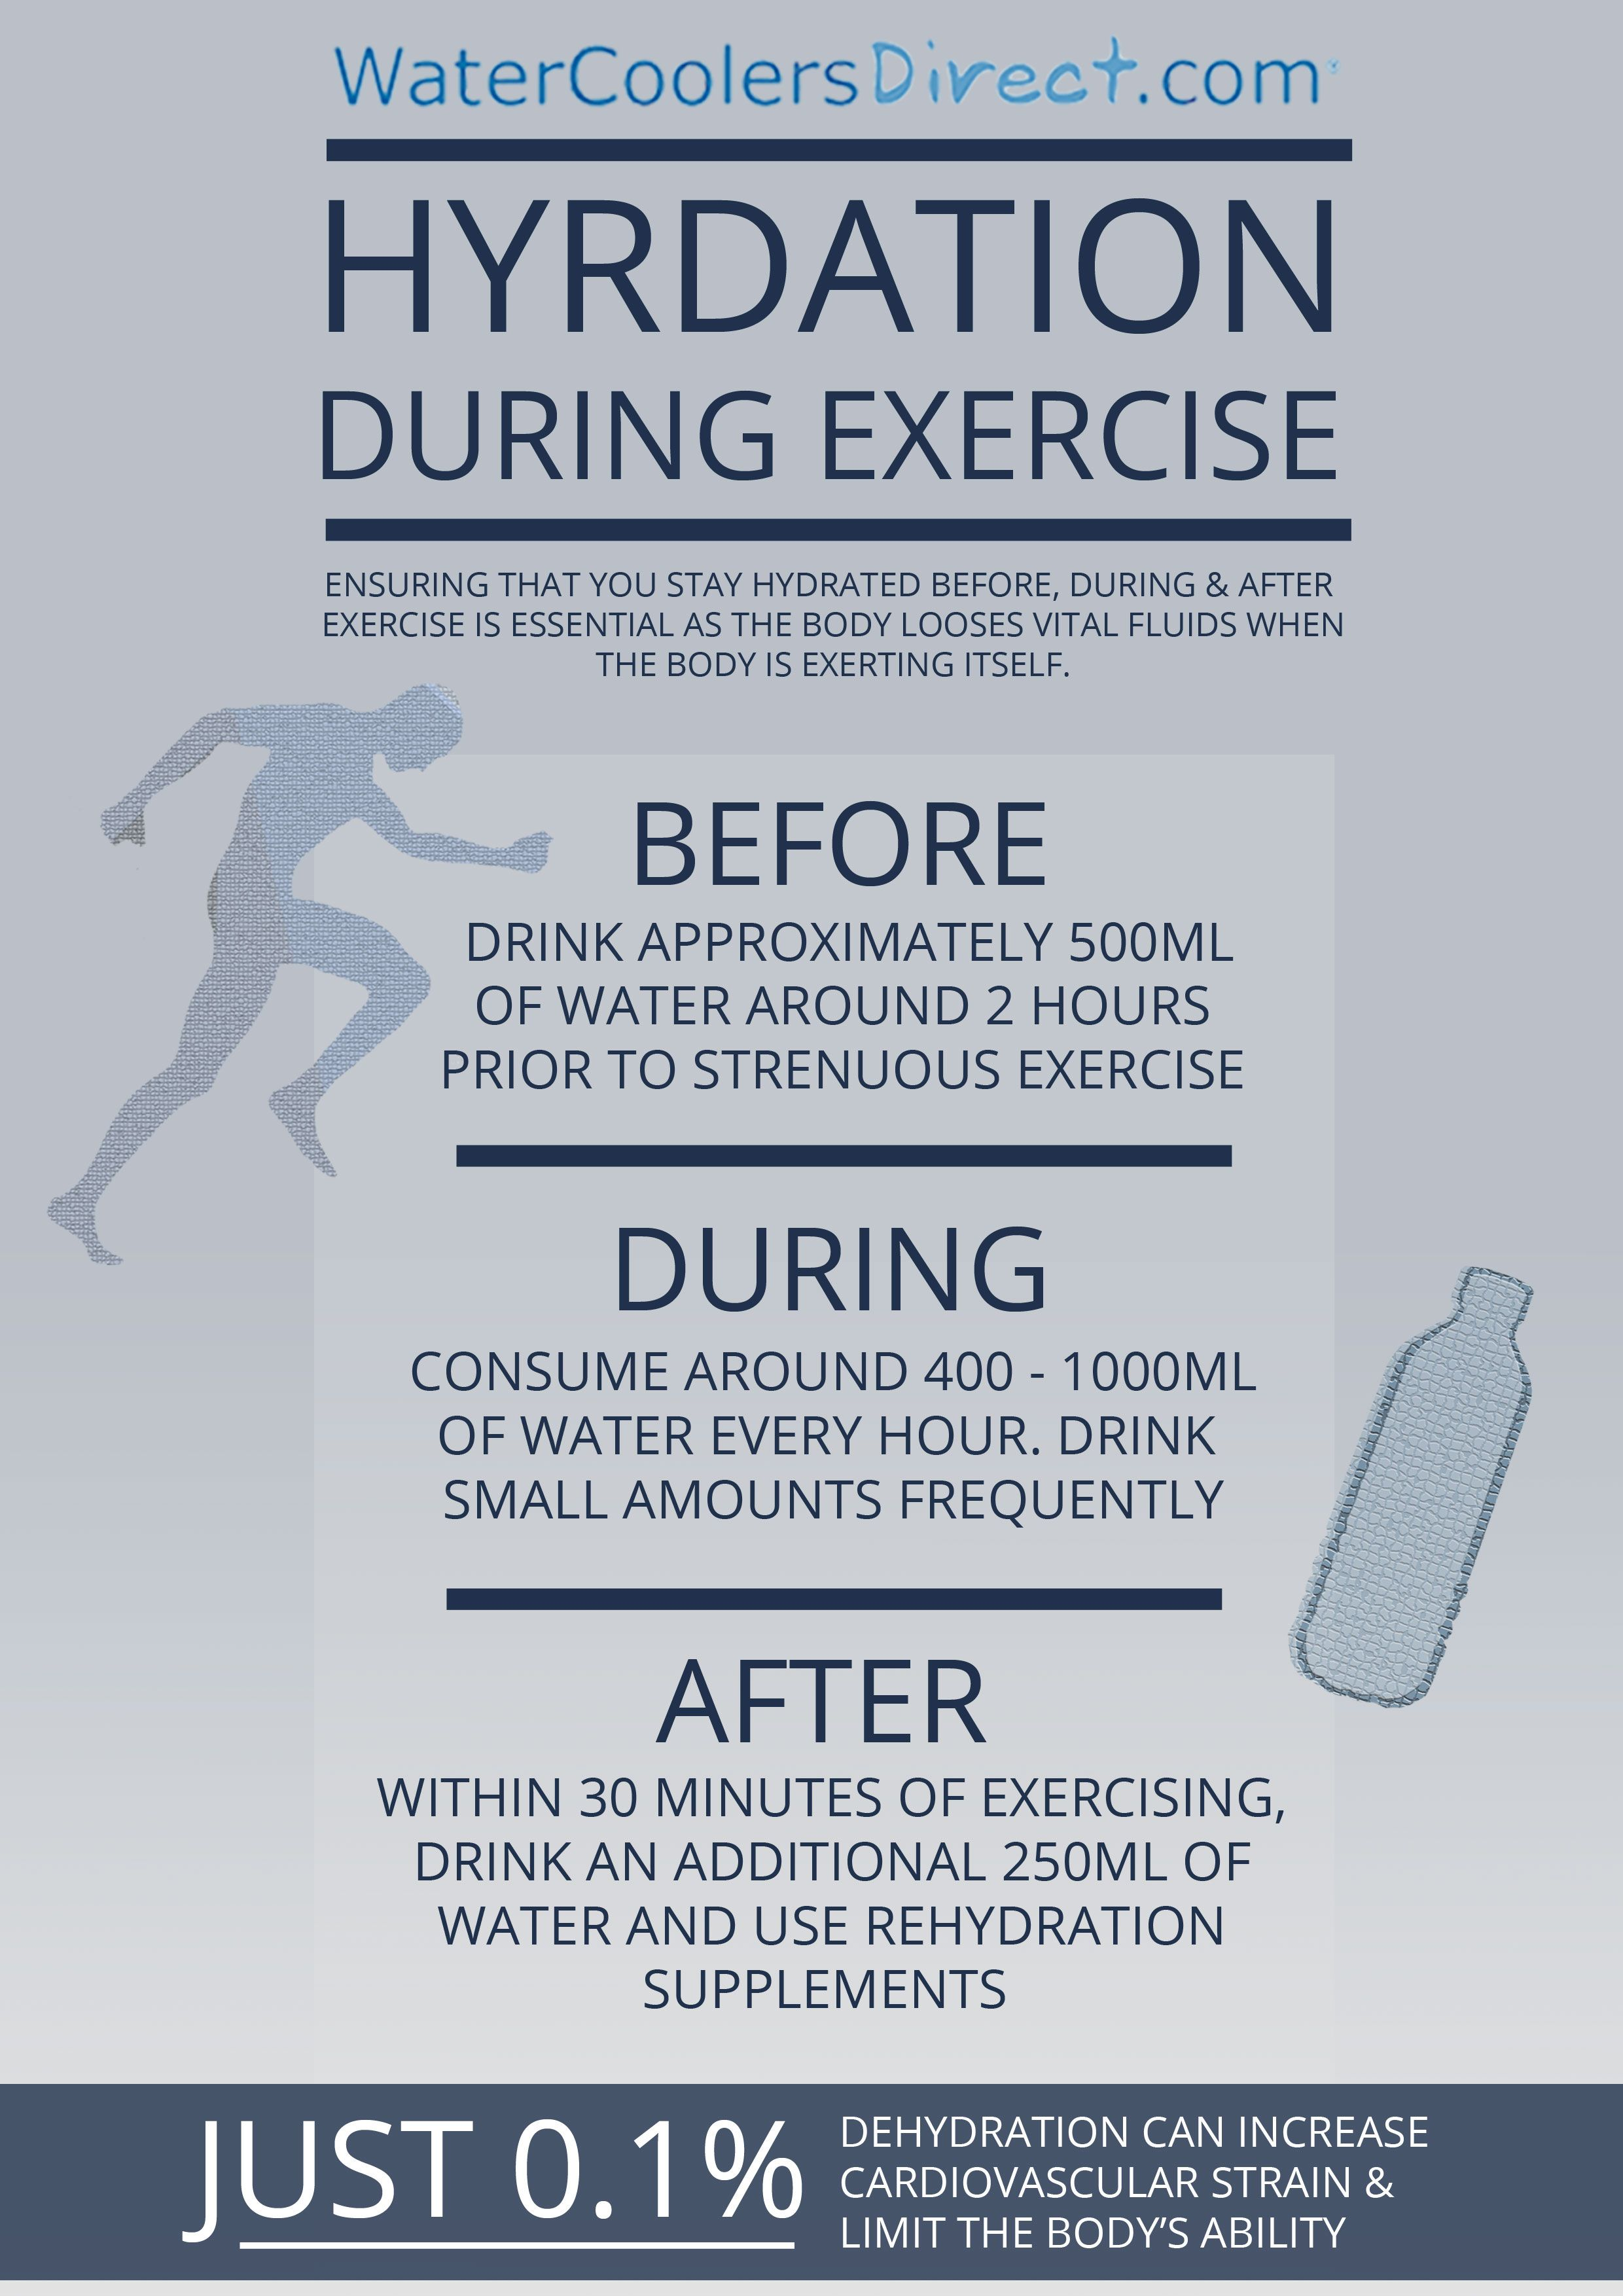 Remember to hydrate before, during and after exercise